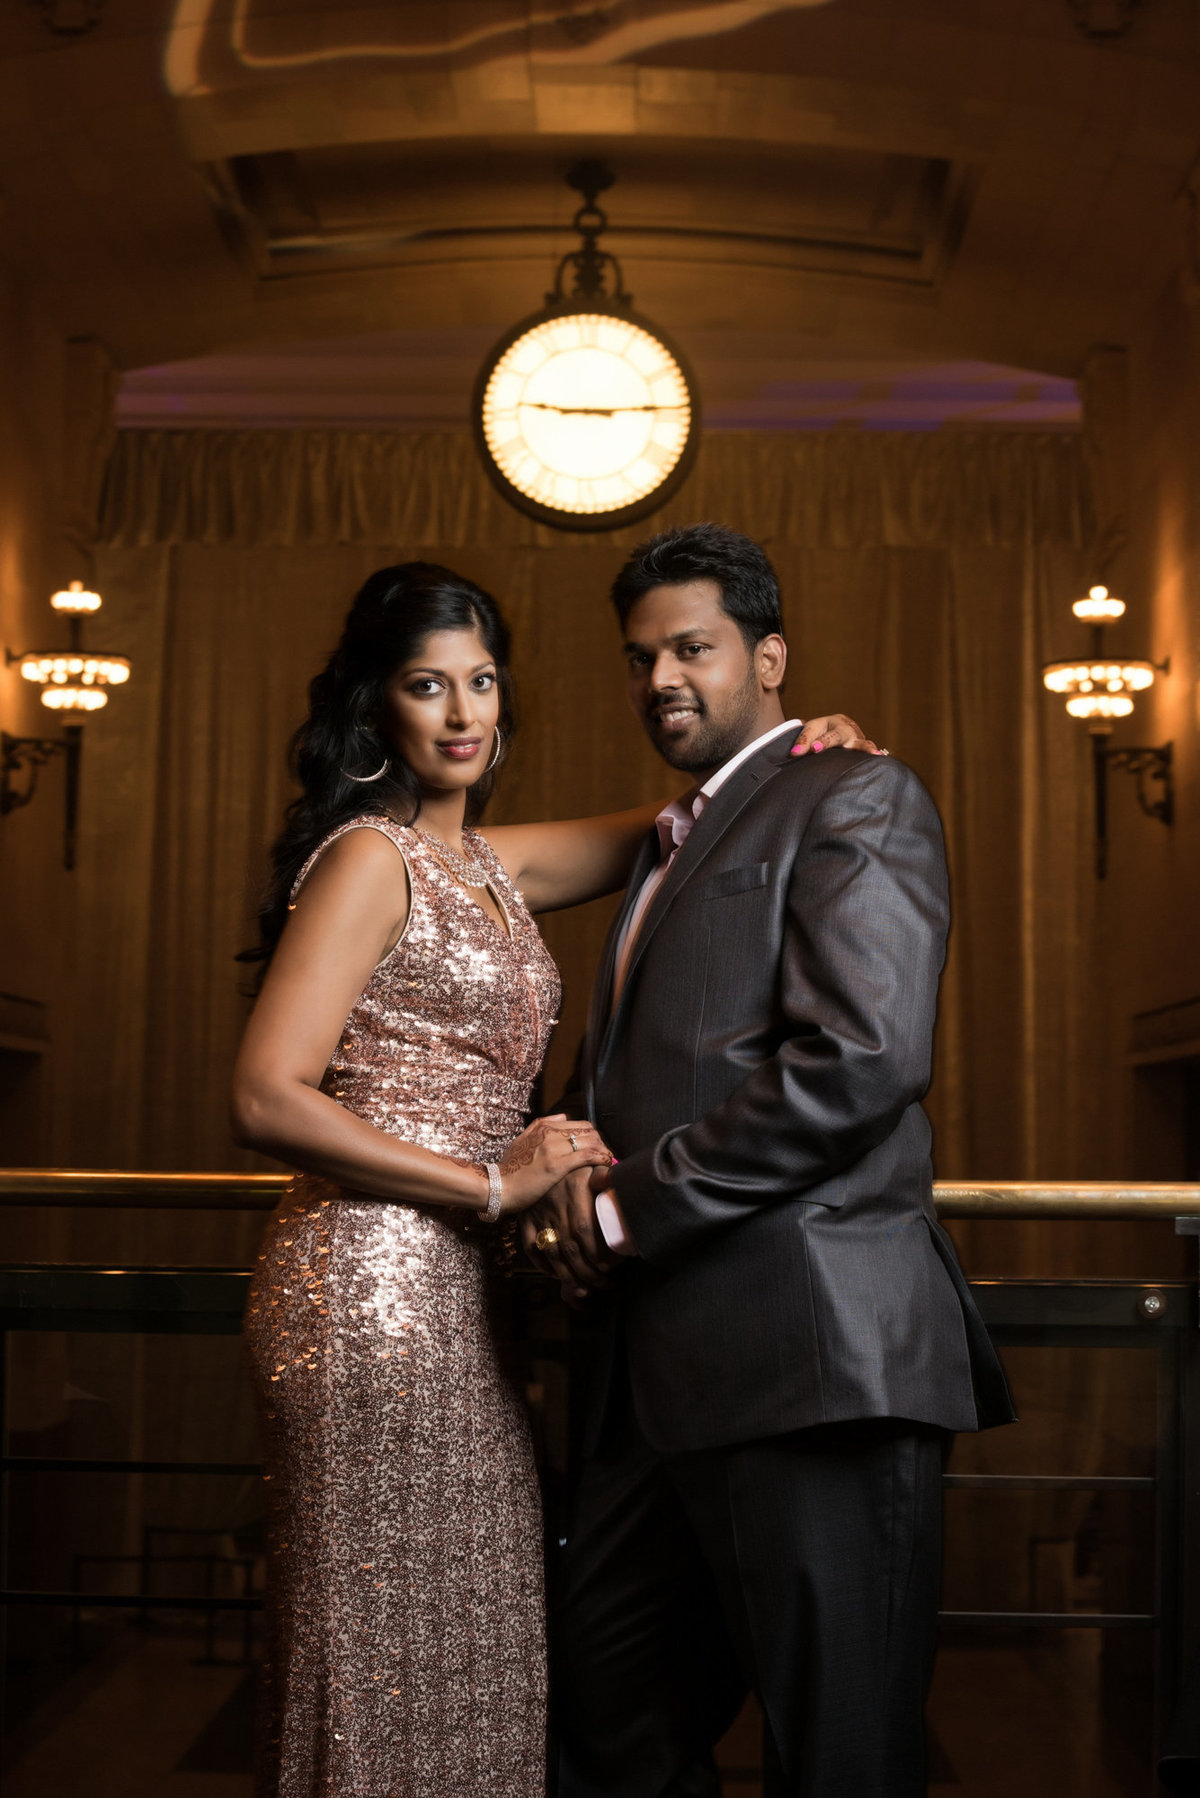 Union-station-indian-wedding-0007